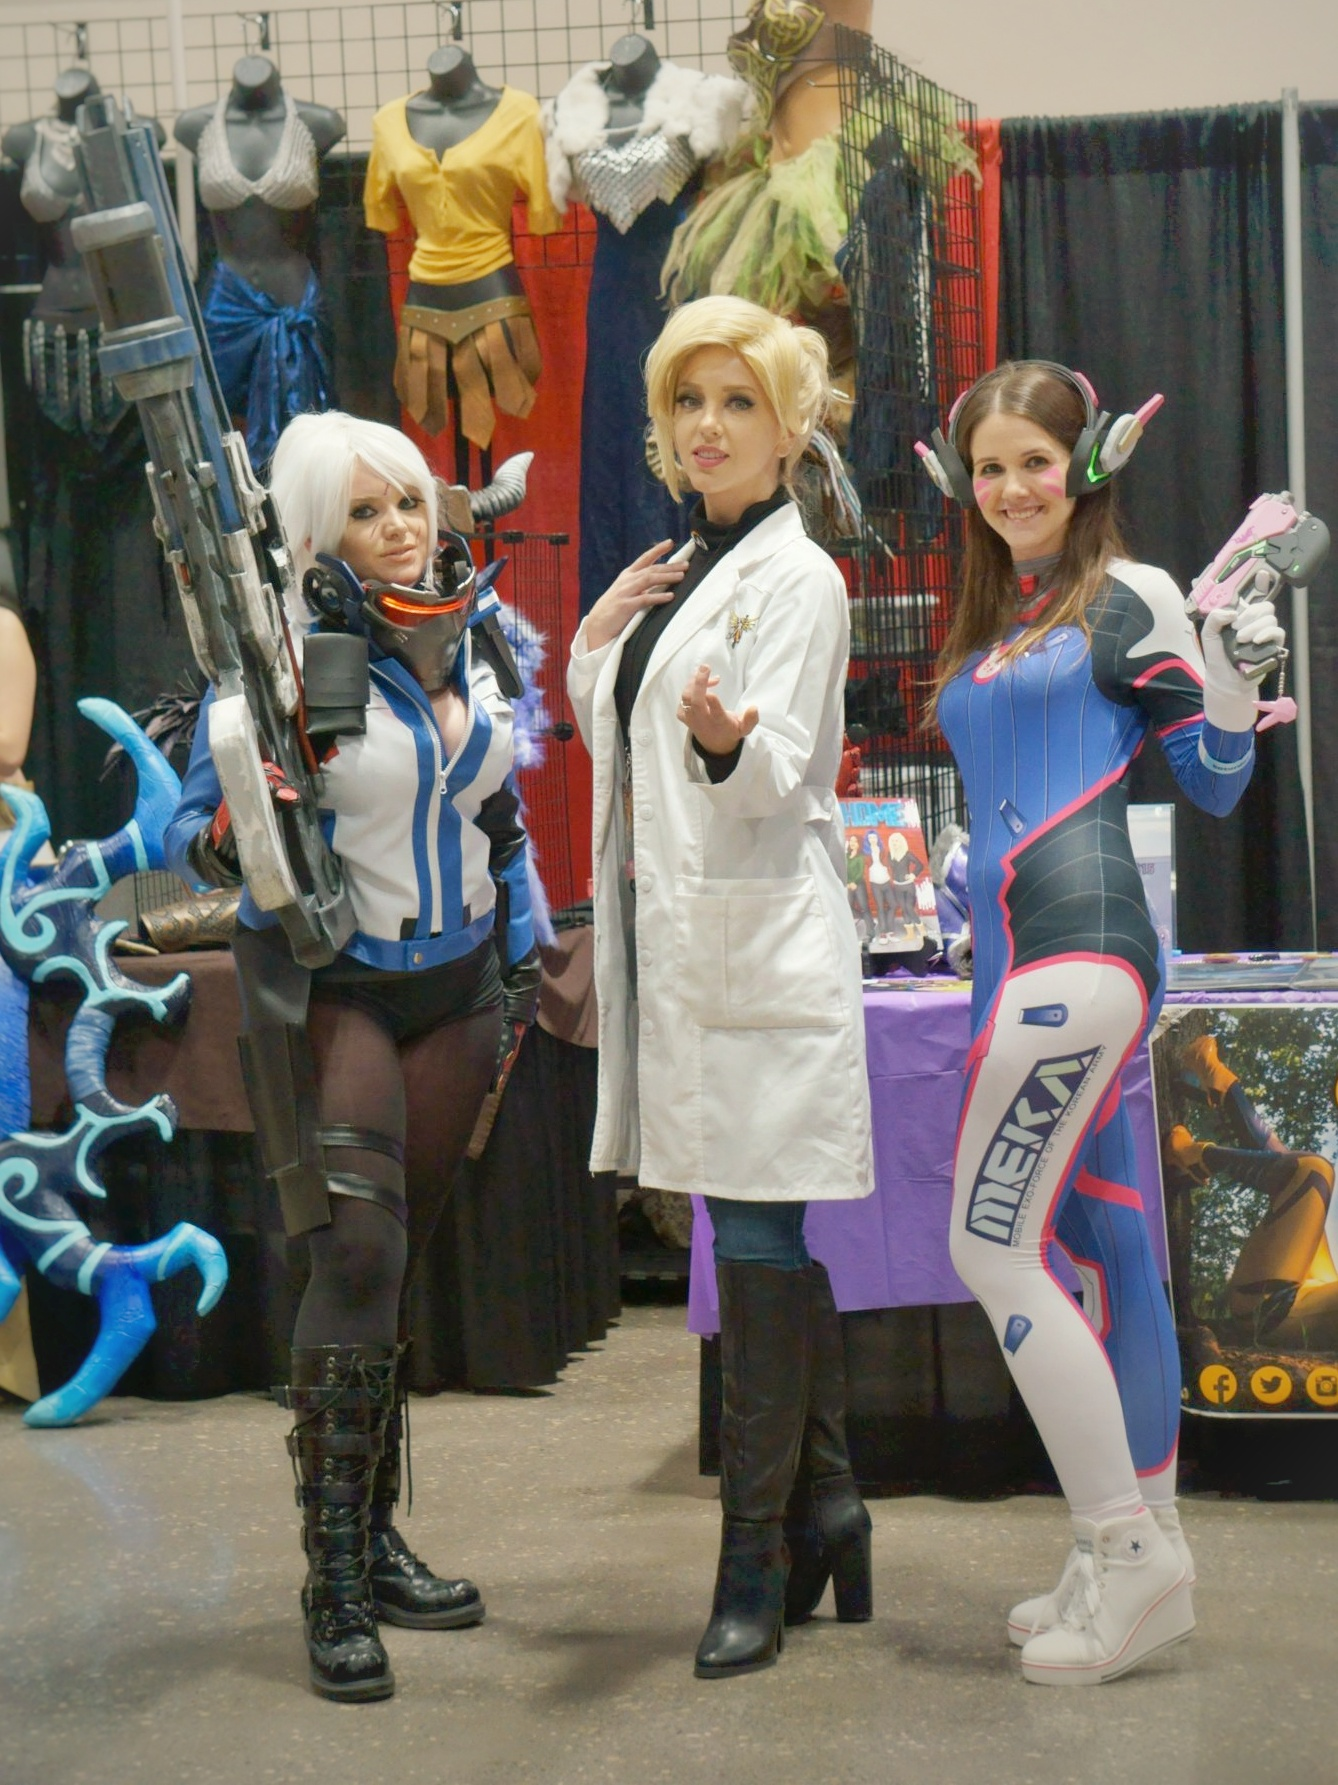 OPINION: I saw the future at Kansas City Comic Con